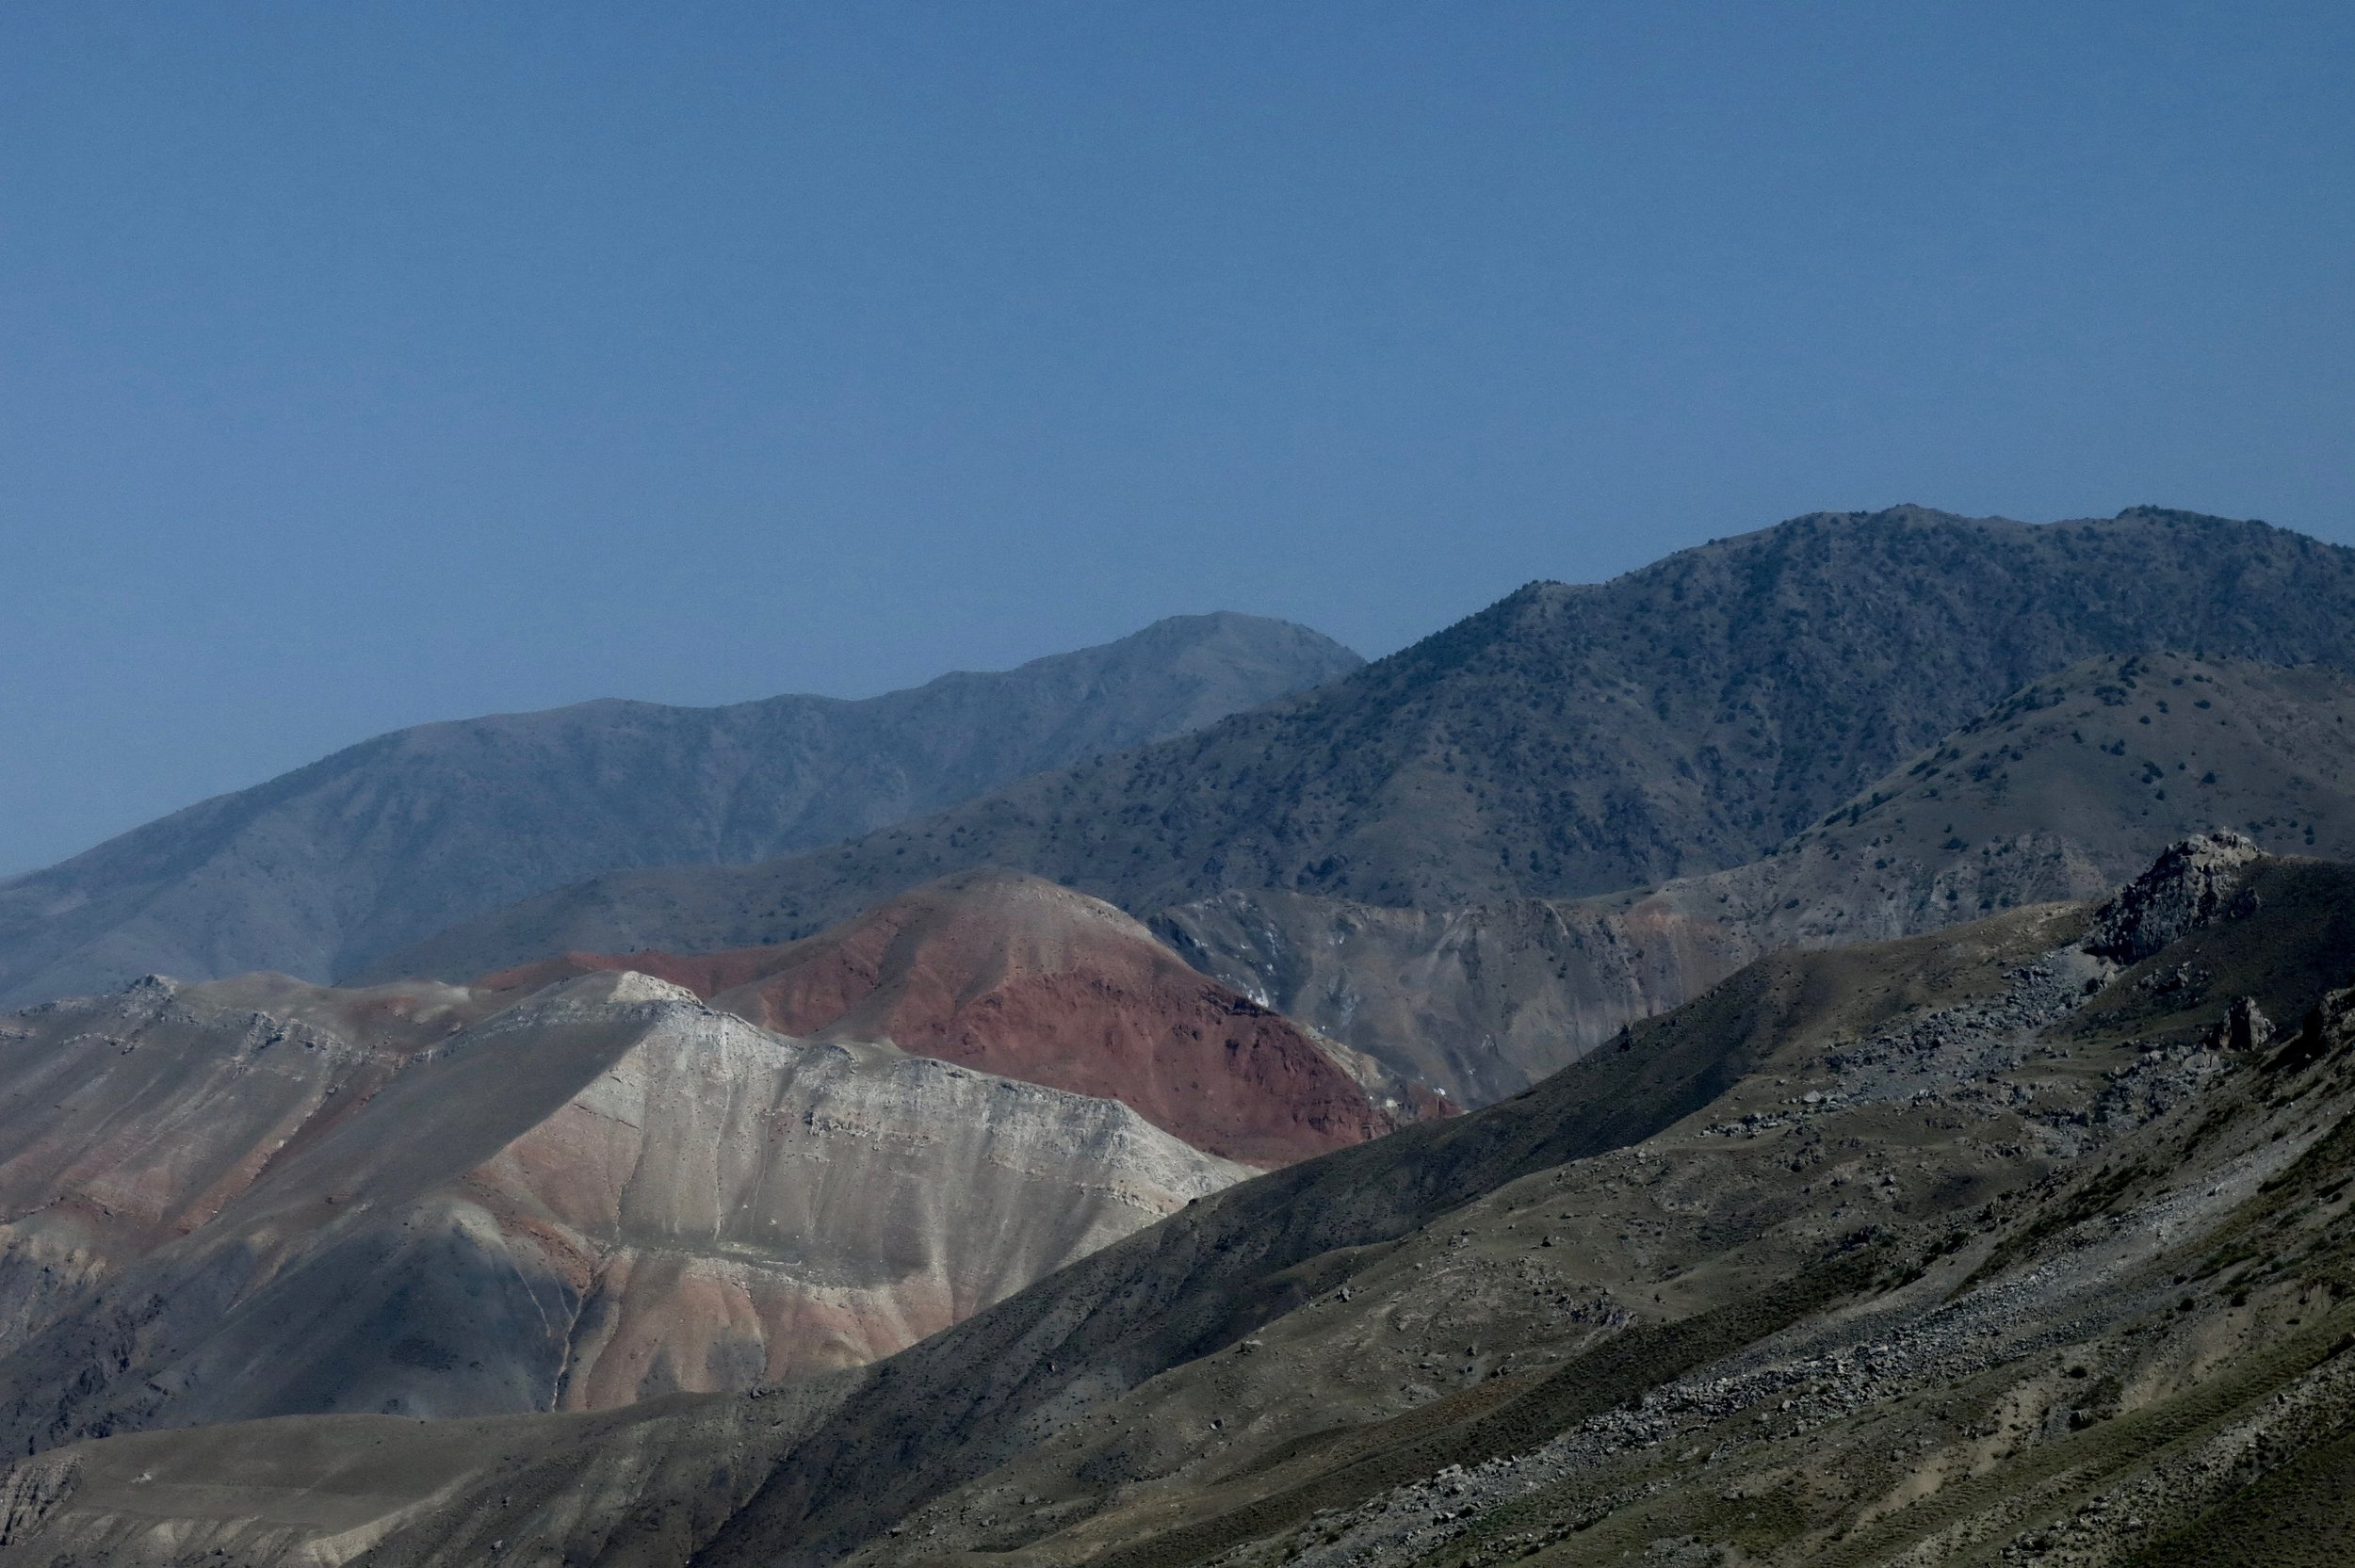 The Fan Mountains north of Dushanbe